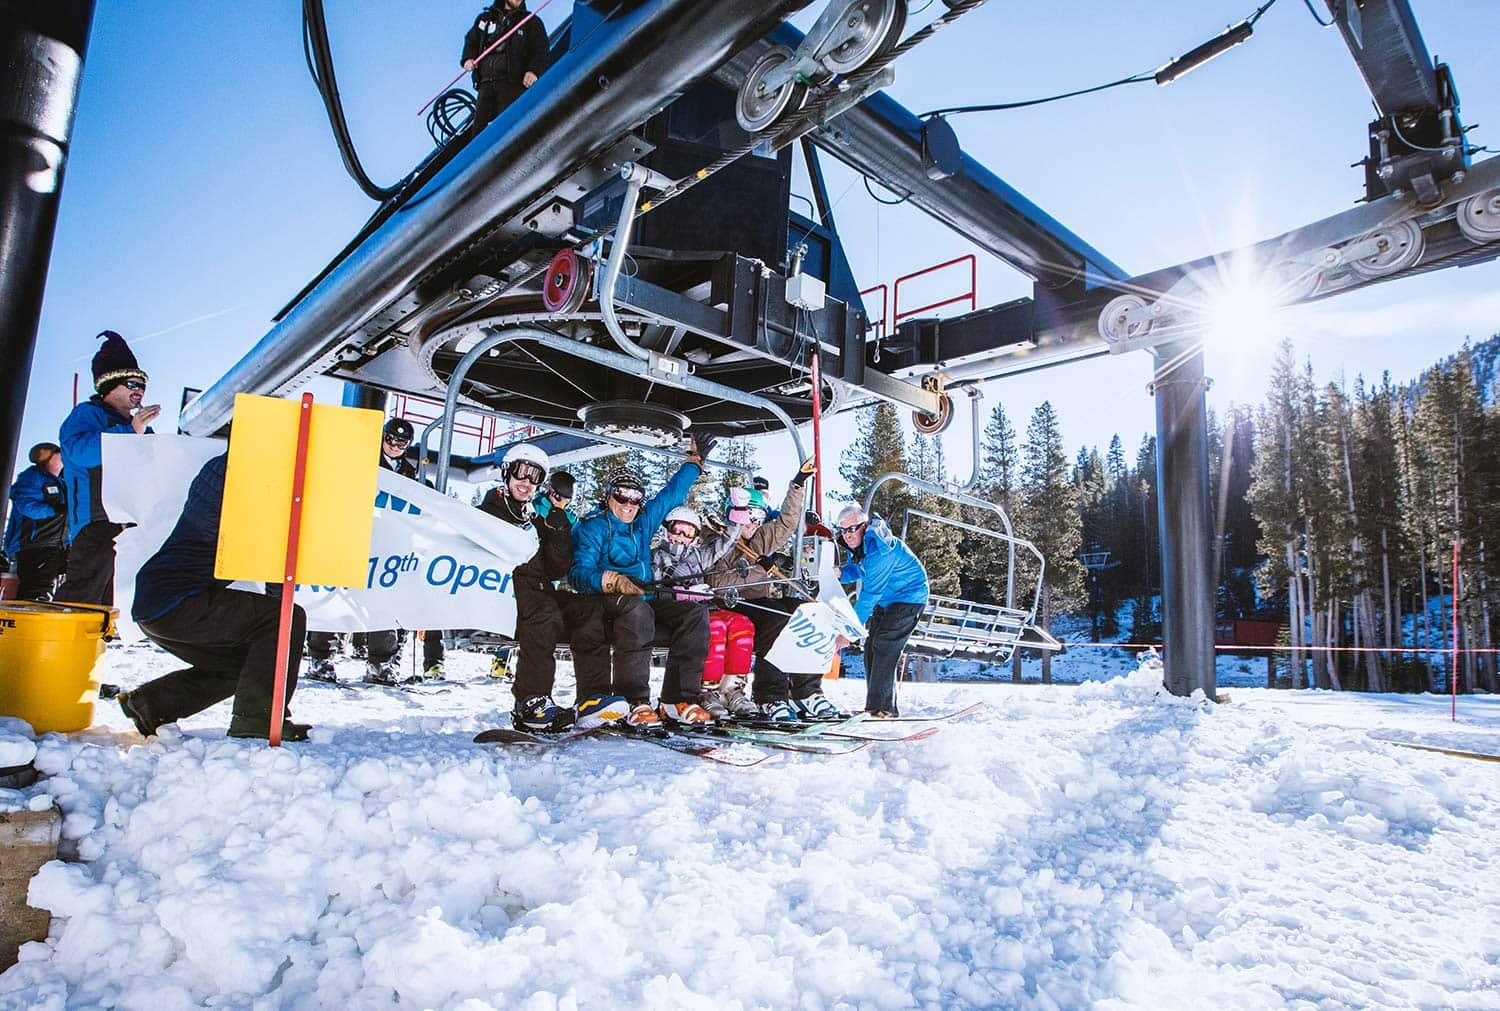 mt-rose_11_18_16_opening_day_chair